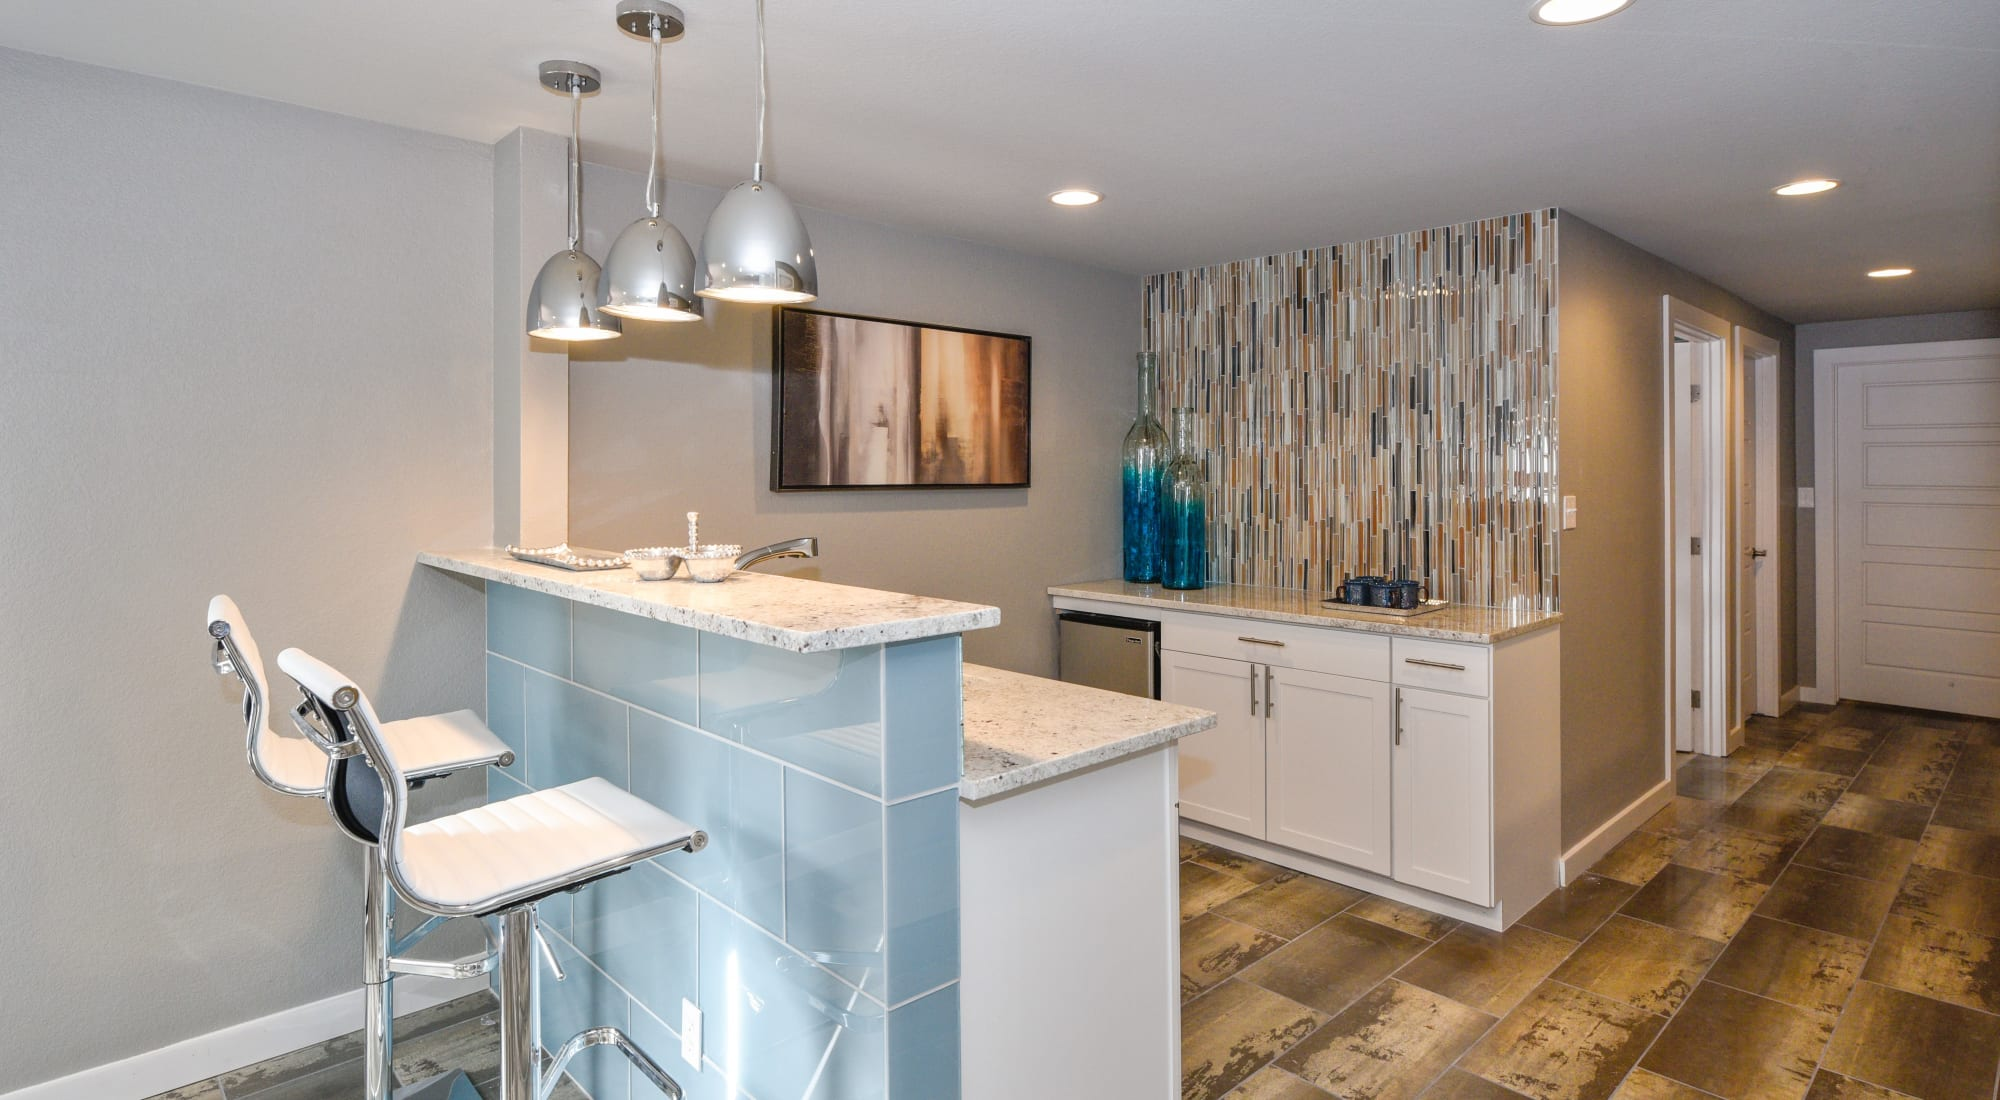 Floor plans at Ten 30 and 49 Apartments in Broomfield, Colorado